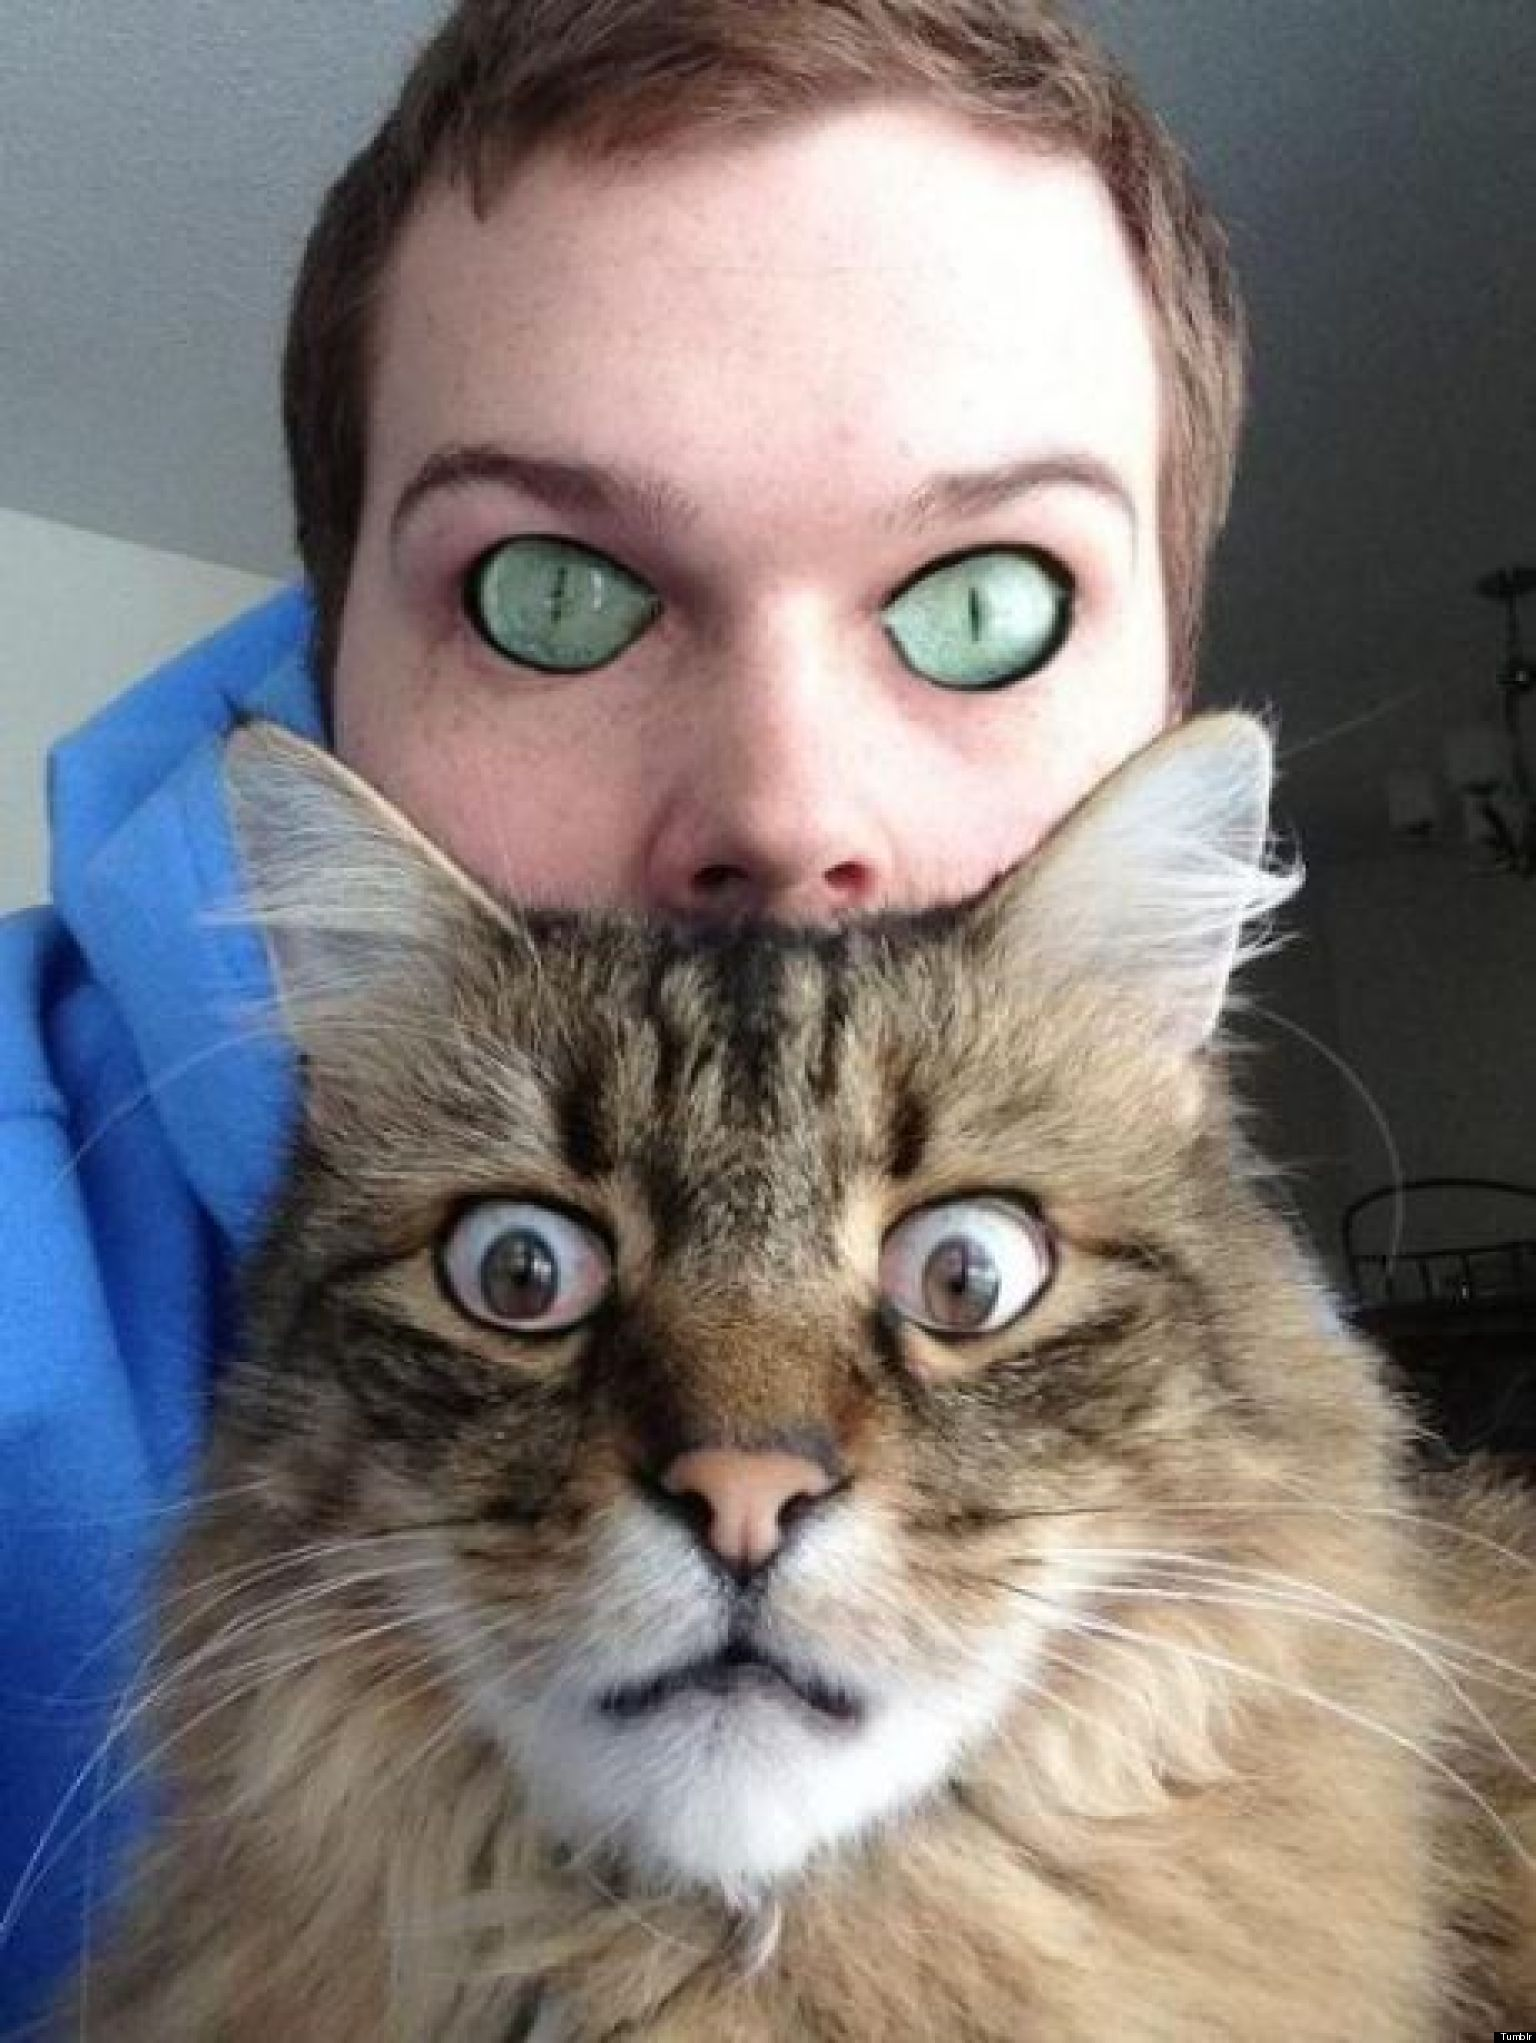 Humans With Cat Eyes Cat And Human Eye Swap Will